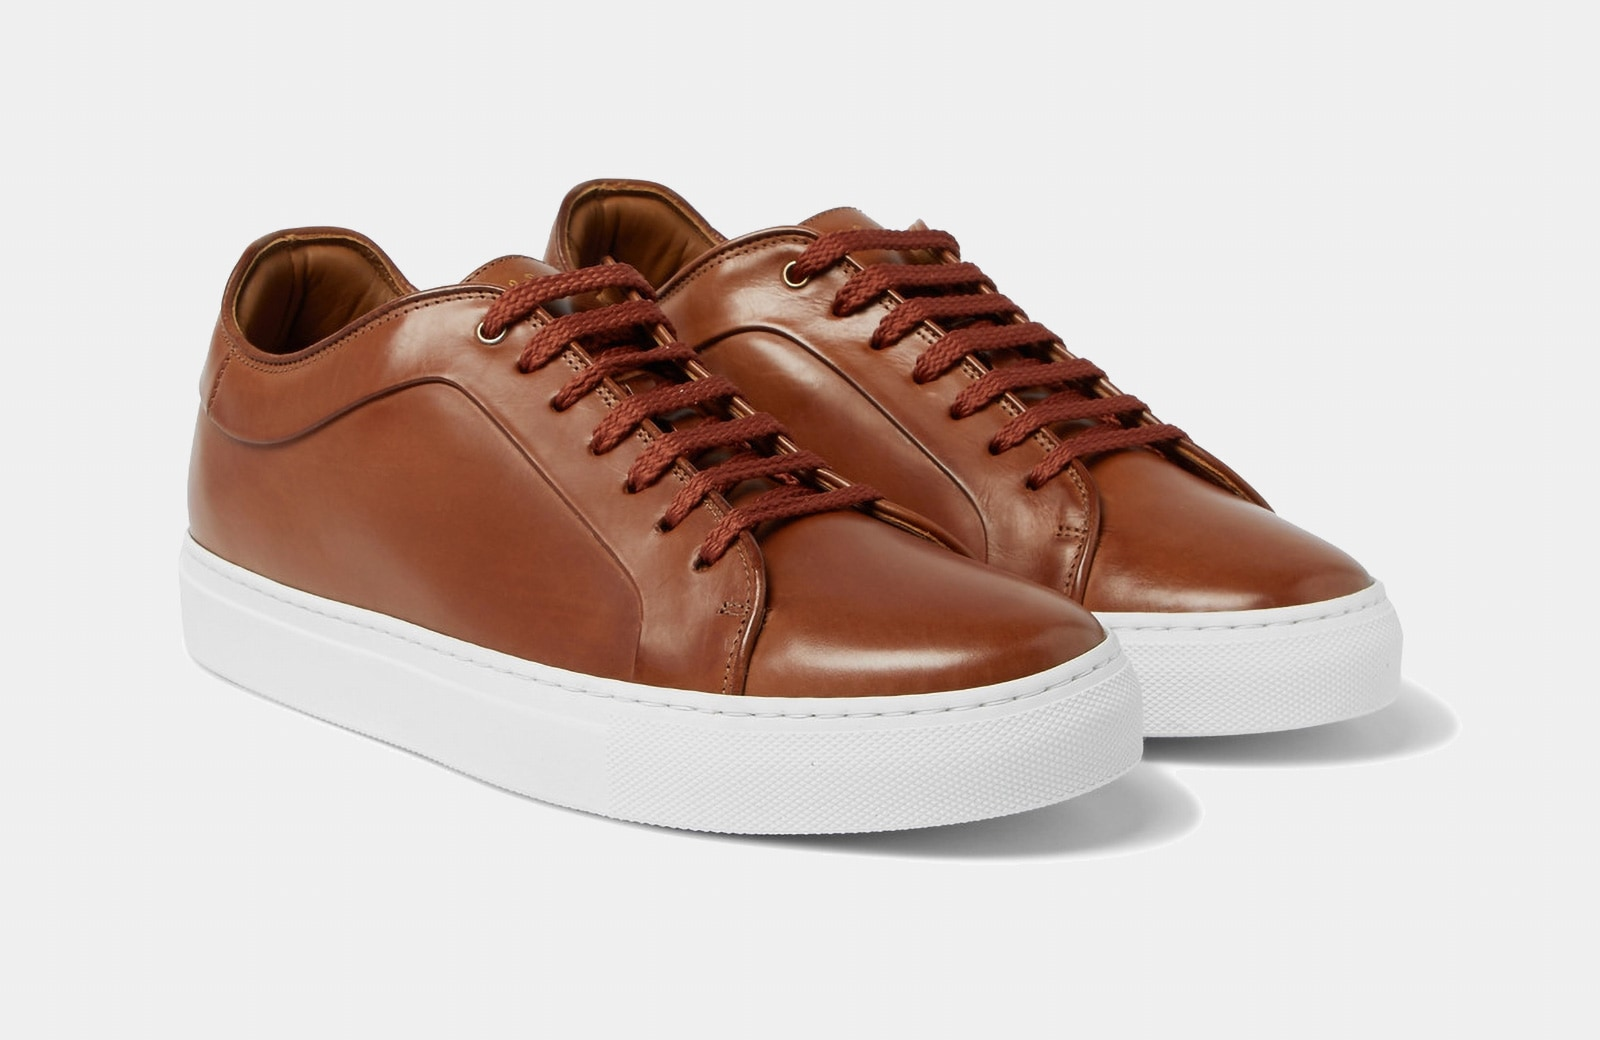 e329537f73f4 20 Luxury Sneakers For Men To Master Casual Smart (2019)